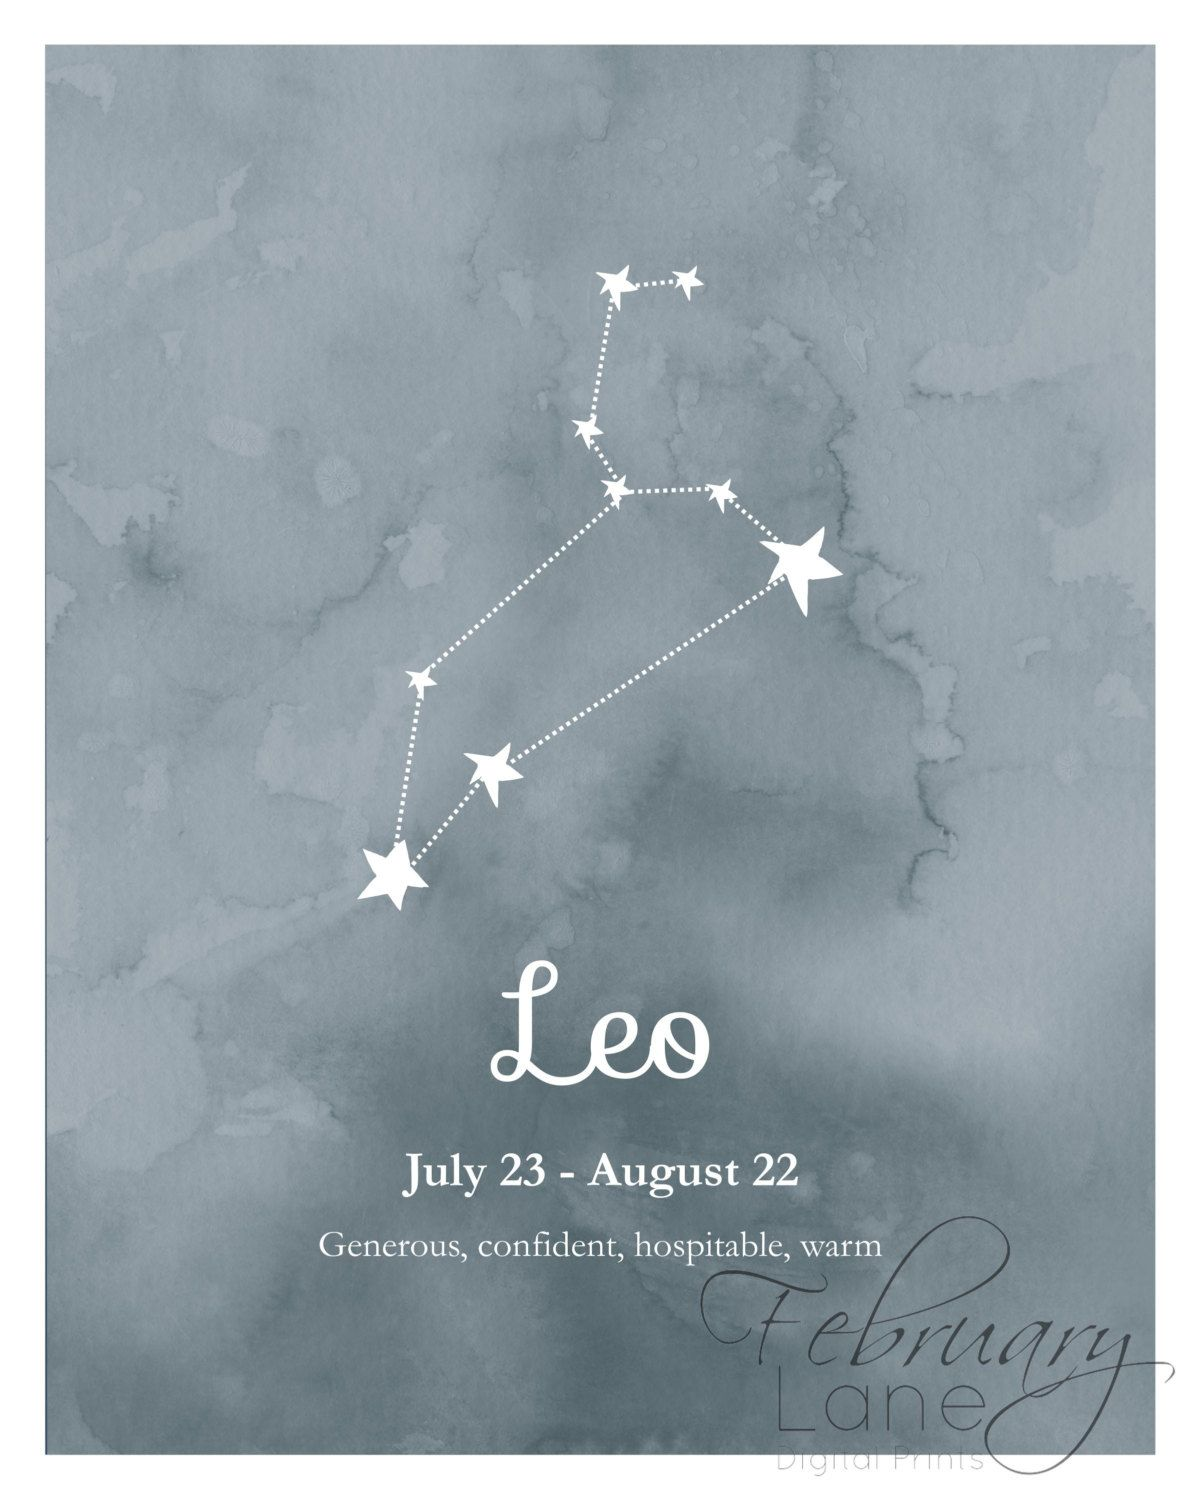 Leo birthday dates in Sydney